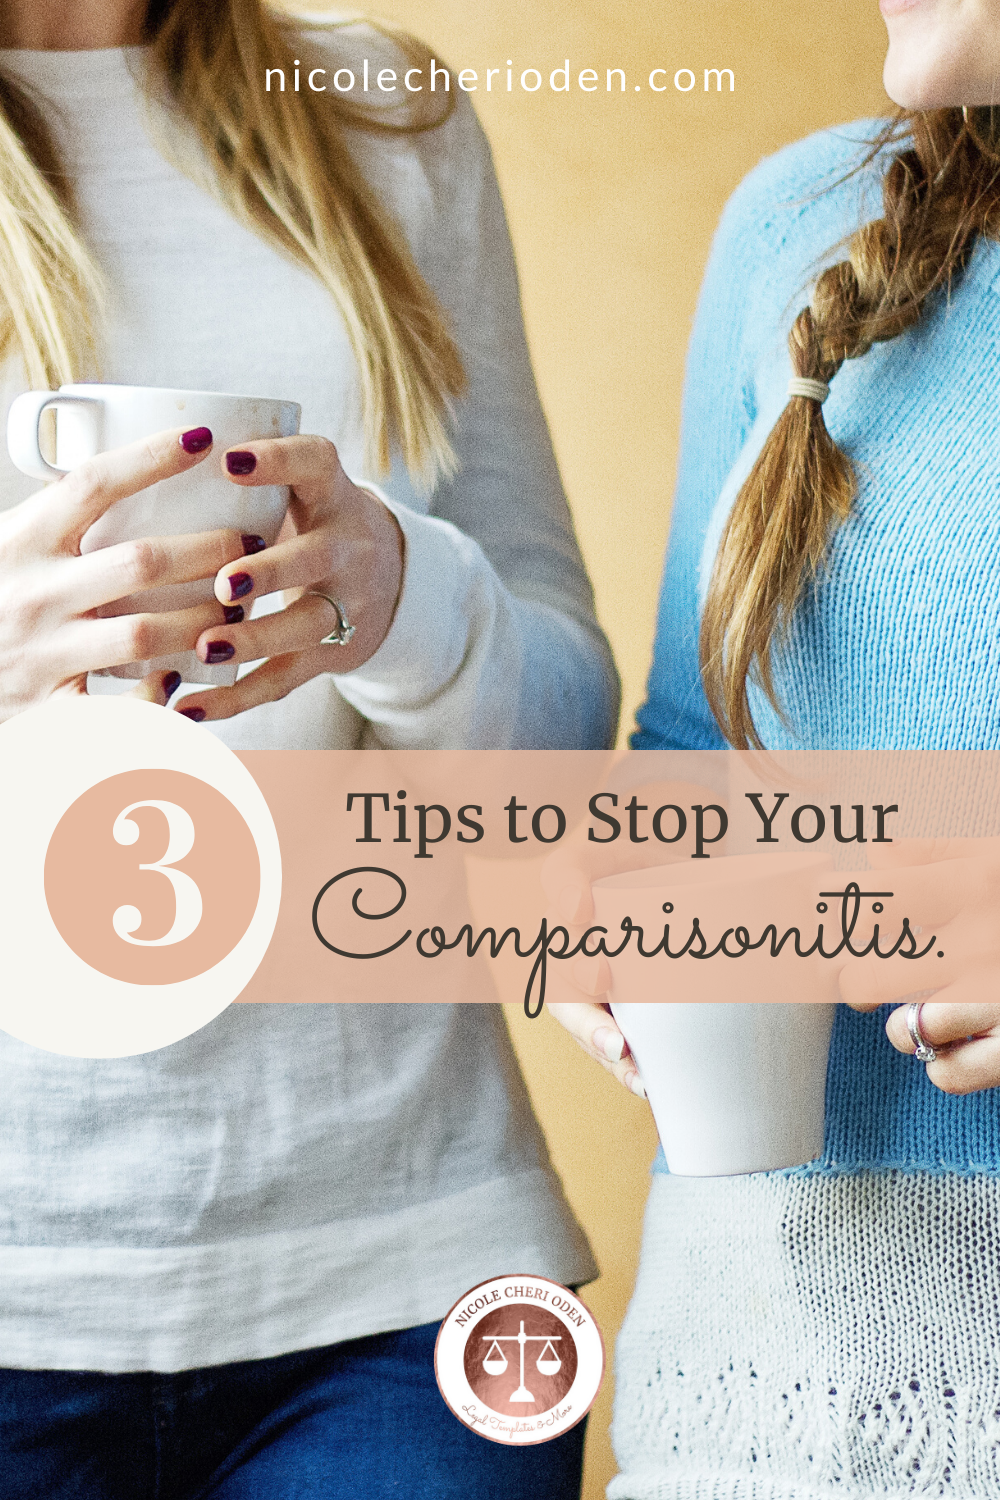 Comparisonitis can be overwhelming. We are sharing 3 tips to stop comparing yourself to others on the internet so that you can change your mindset and your business.  Head to the blog to learn more. #comparisonitis #mindset #comparisonisthethiefofjoy